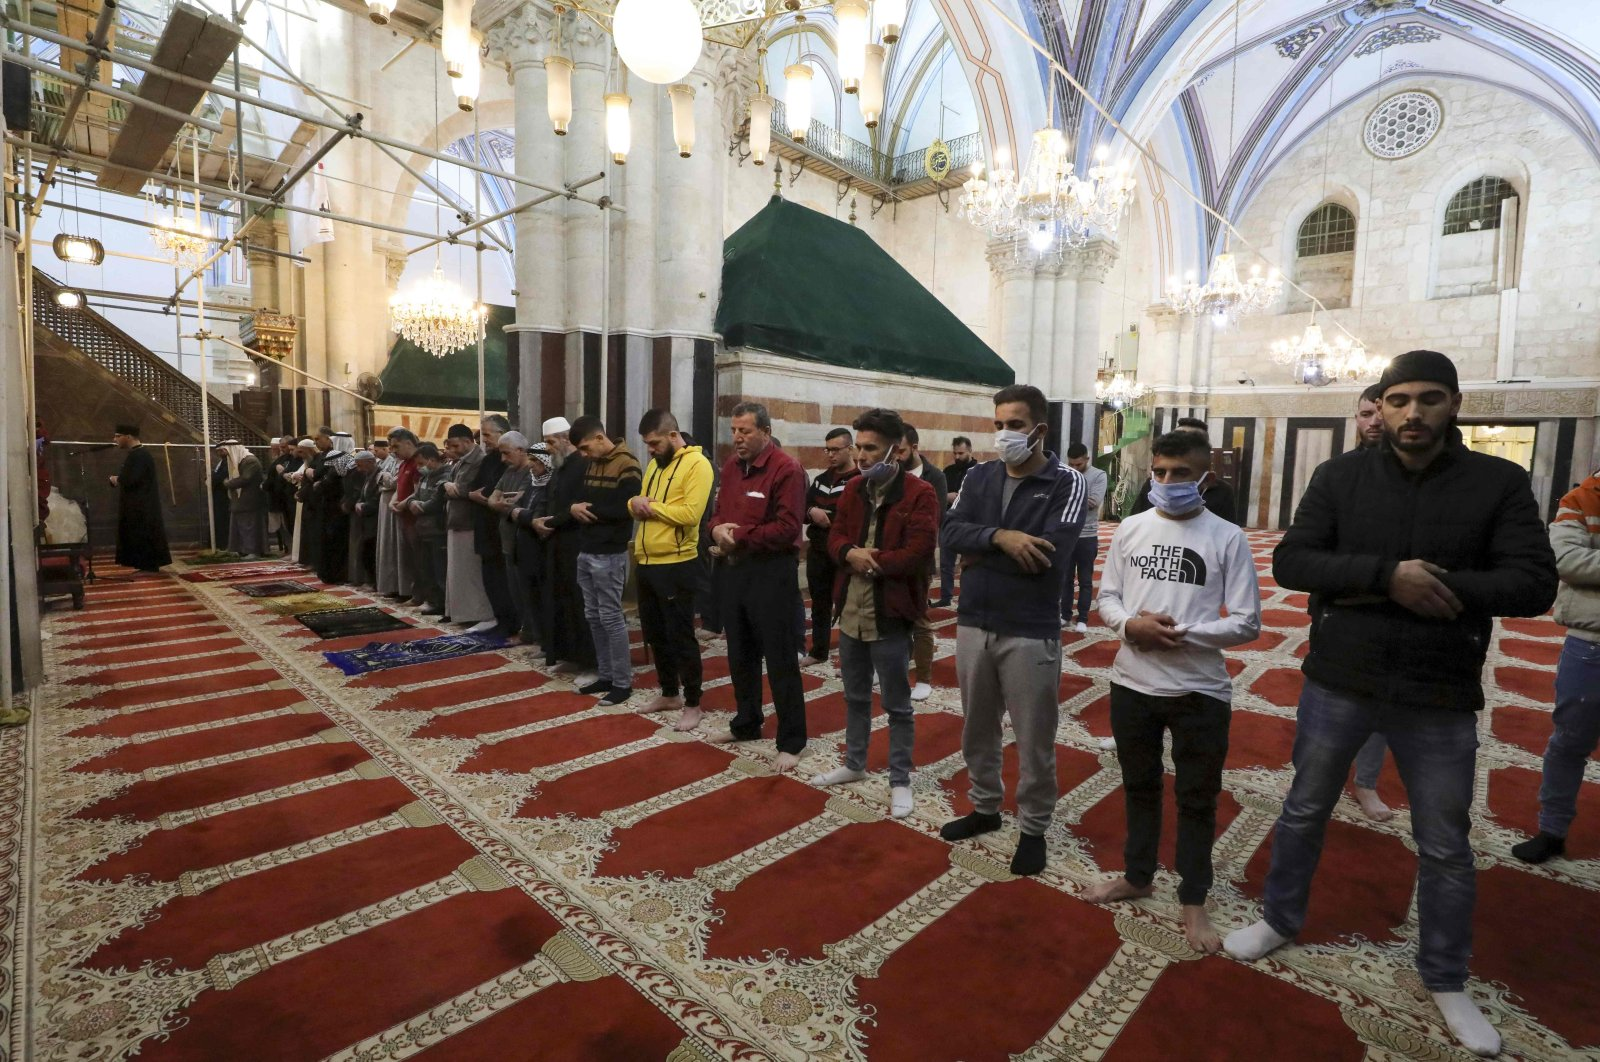 Palestinian men gather for dawn prayers at the Ibrahimi Mosque, Hebron, occupied West Bank, May 26, 2020. (AFP Photo)